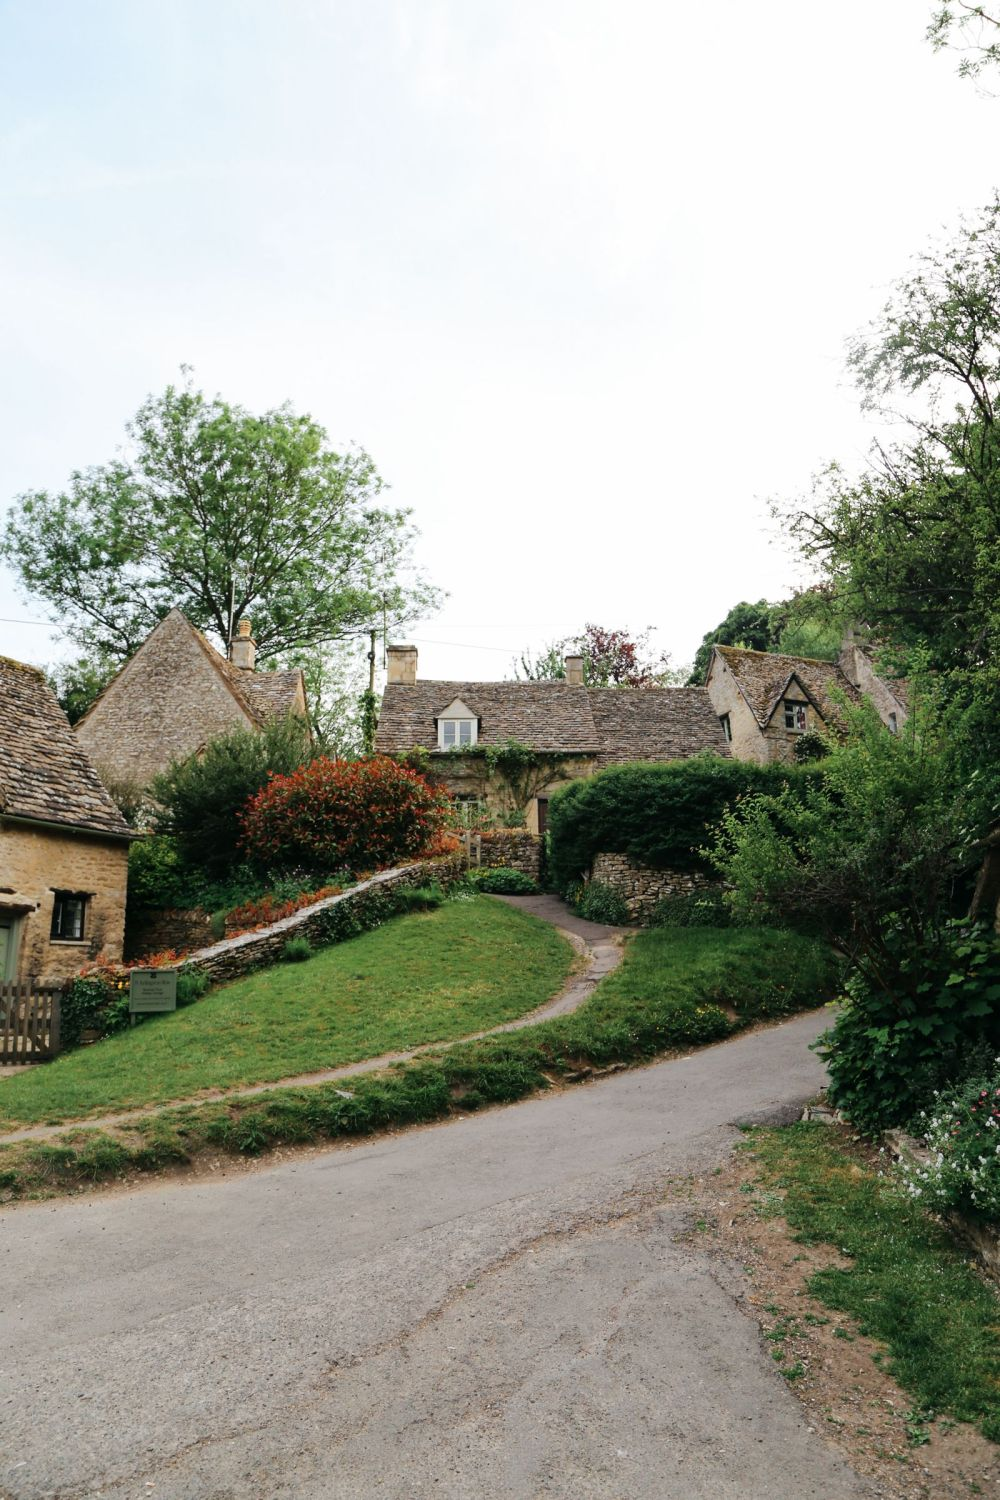 In Search Of The Most Beautiful Street In England - Arlington Row, Bibury (28)